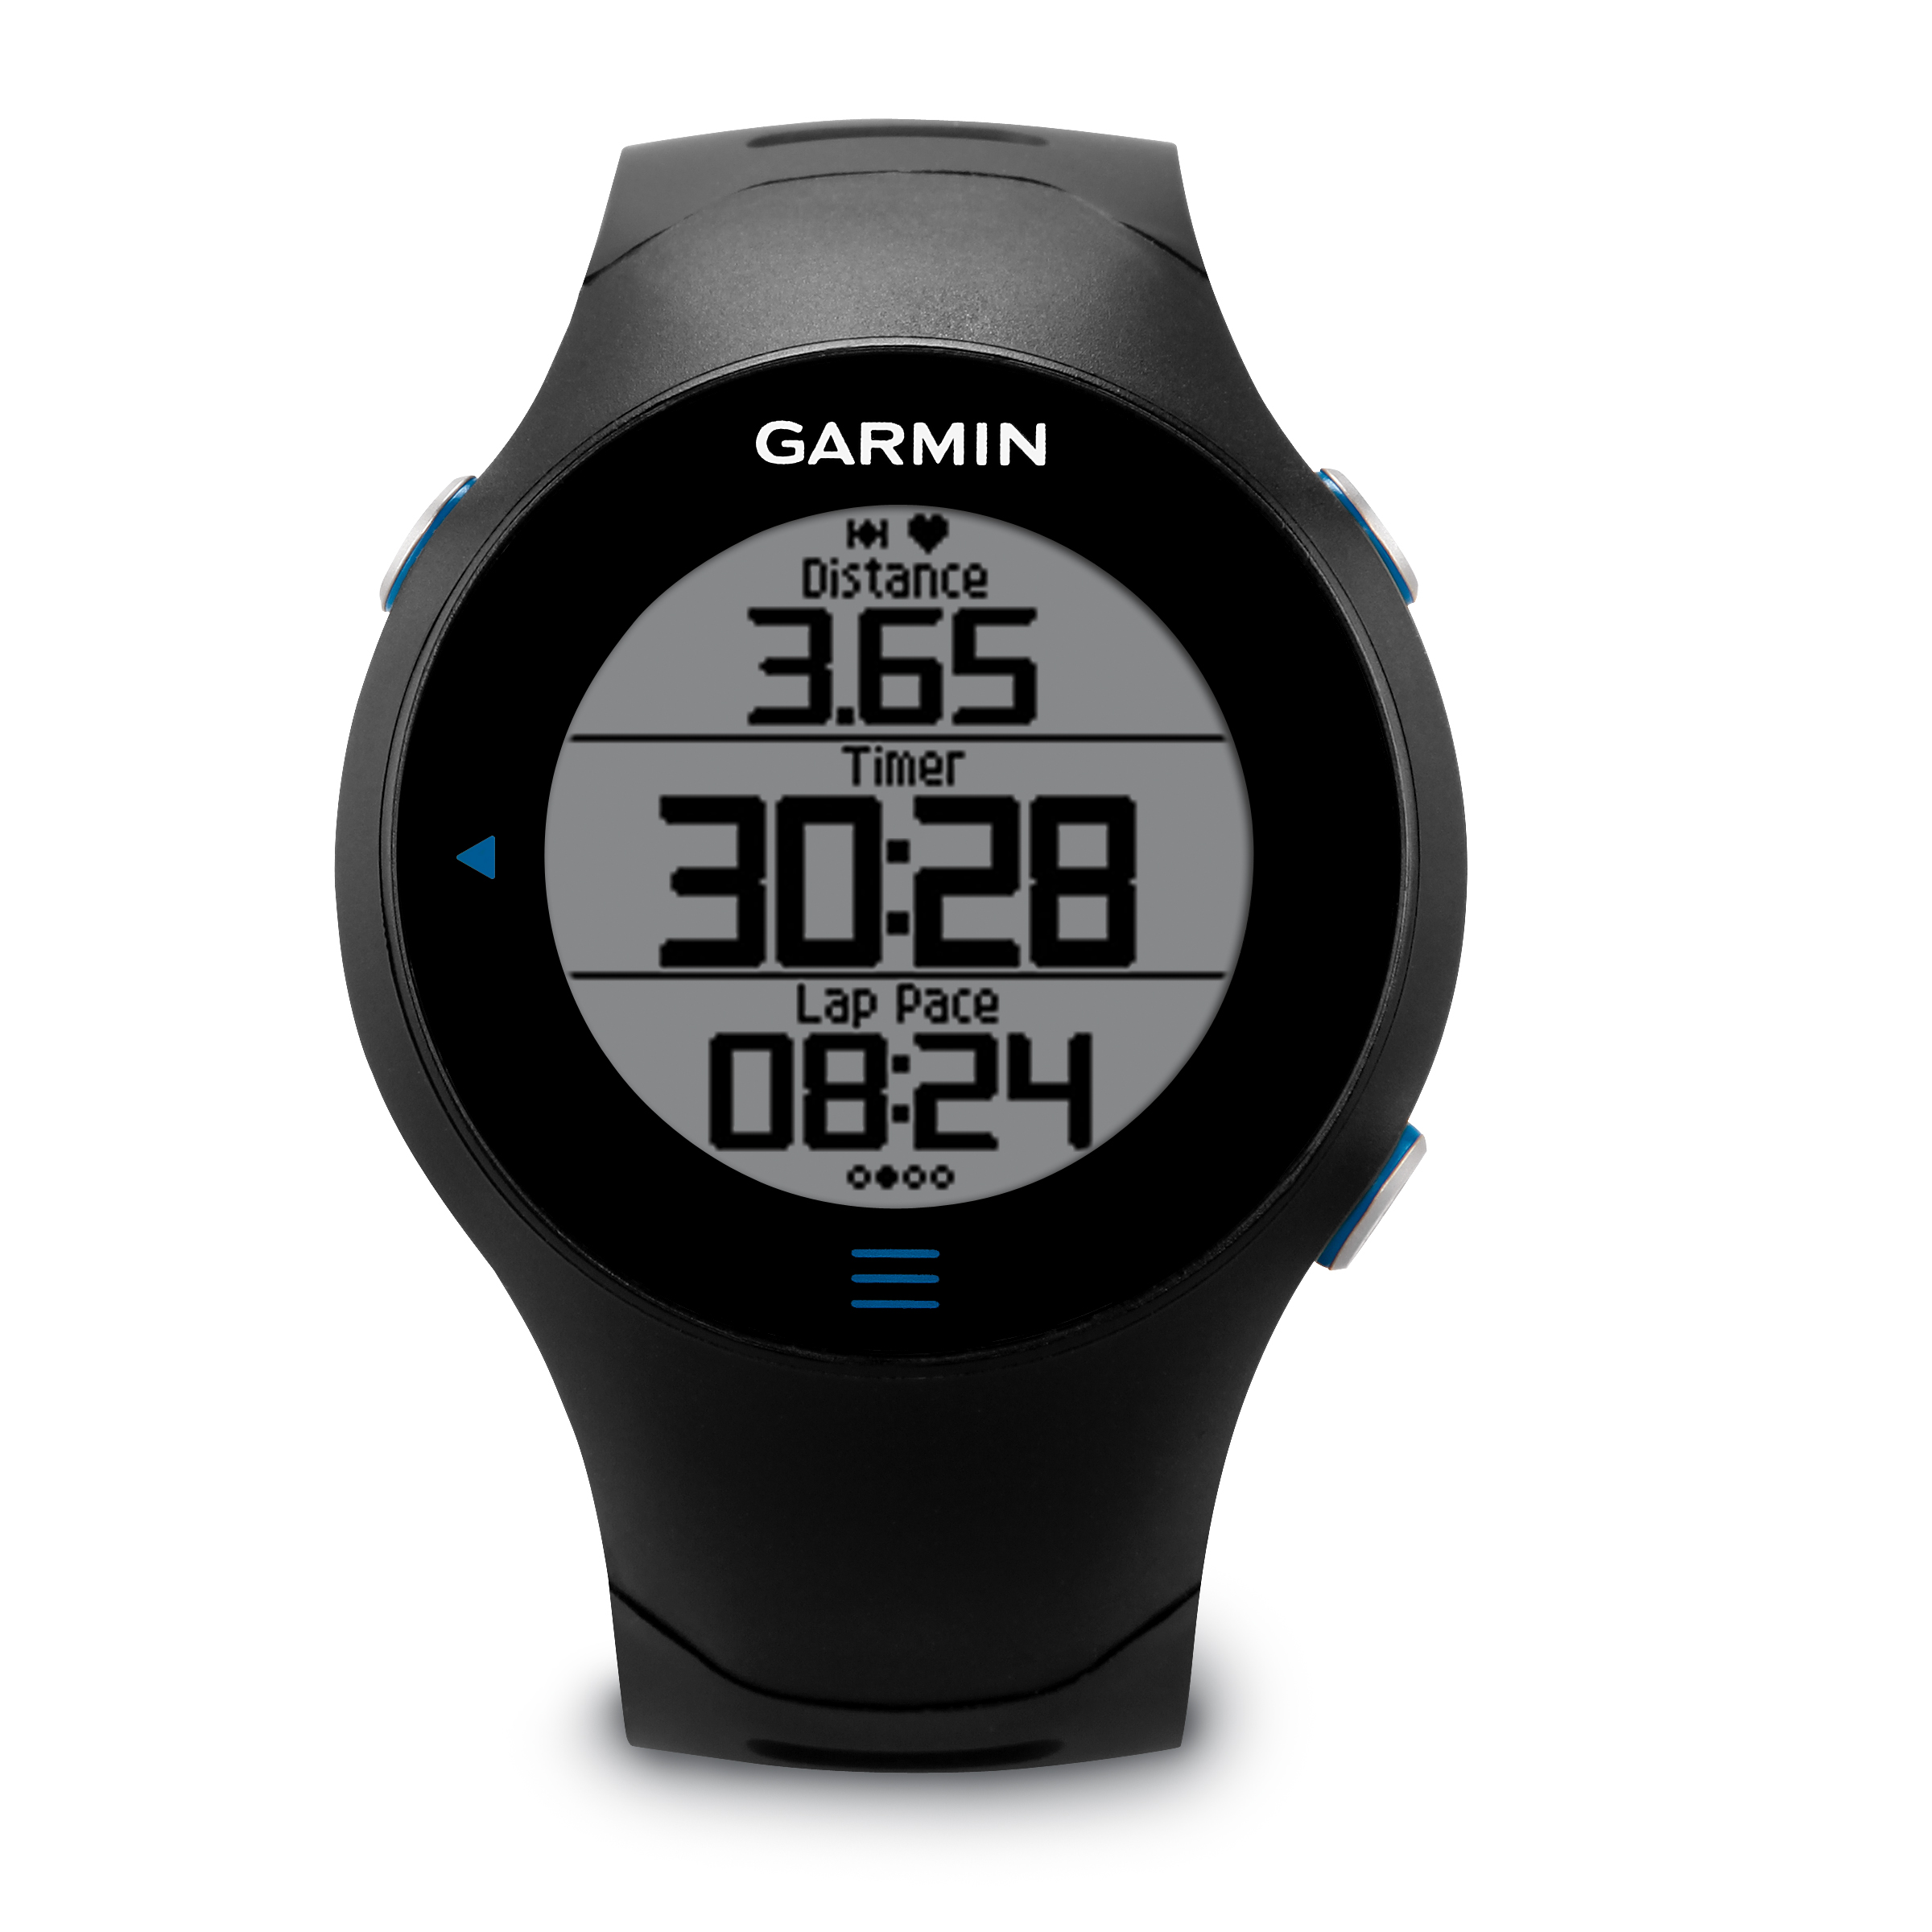 new garmin forerunner 610 multicolor touch screen gps watch announced. Black Bedroom Furniture Sets. Home Design Ideas